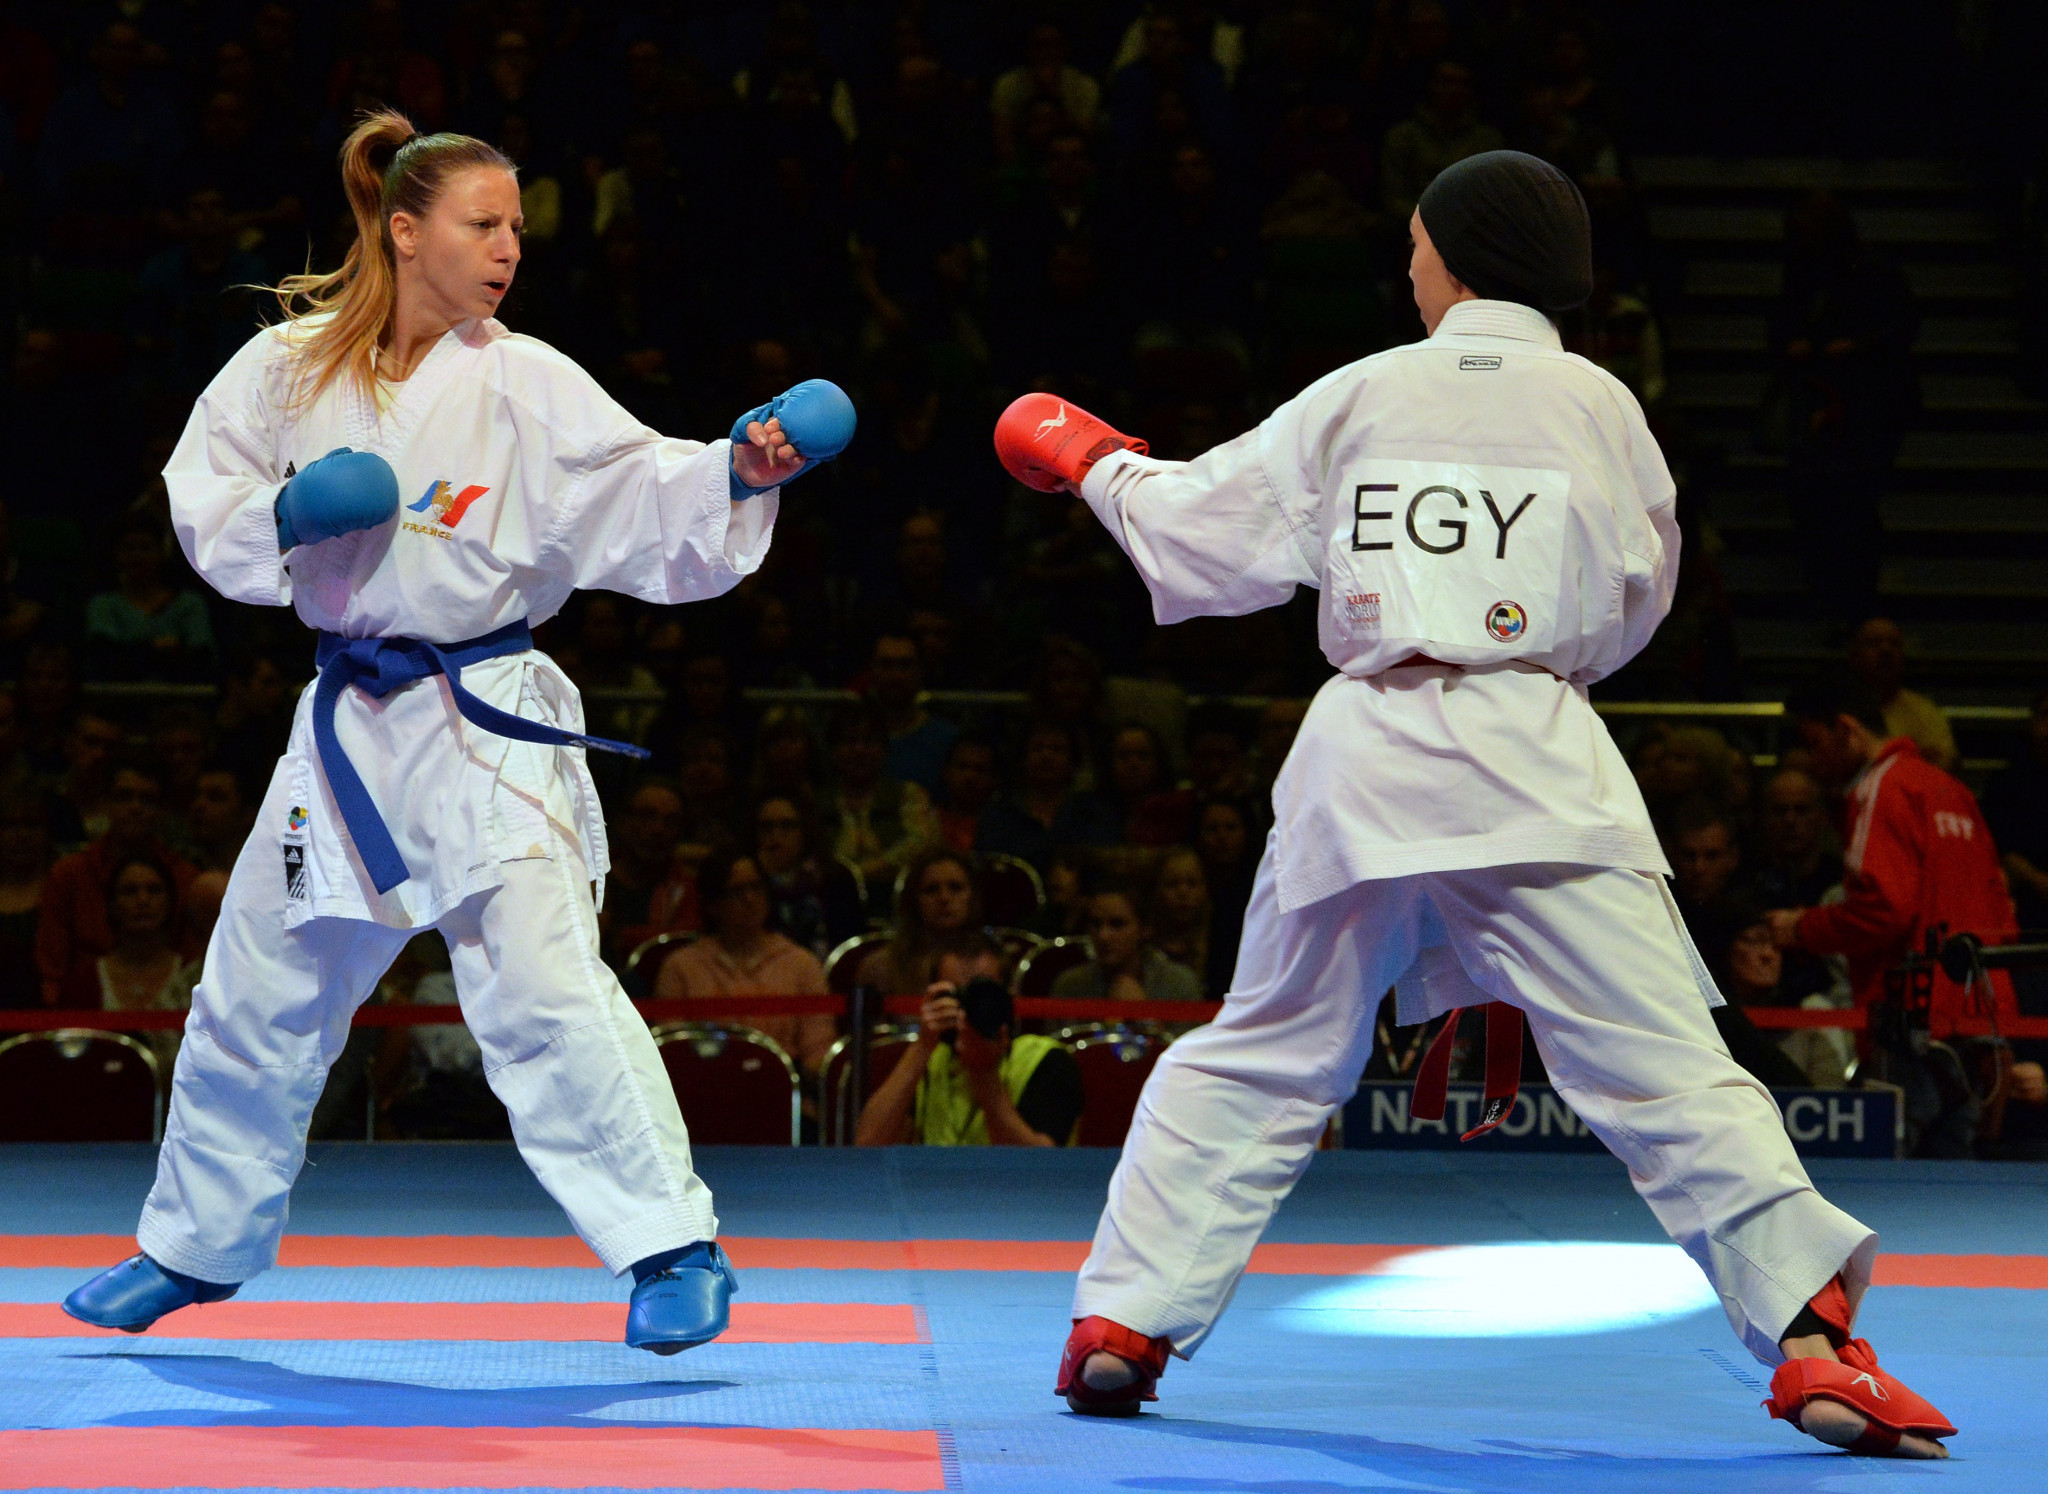 Alexandra Recchia, left, will represent hosts France at the first Karate 1-Premier League event of the 2018 season ©Getty Images